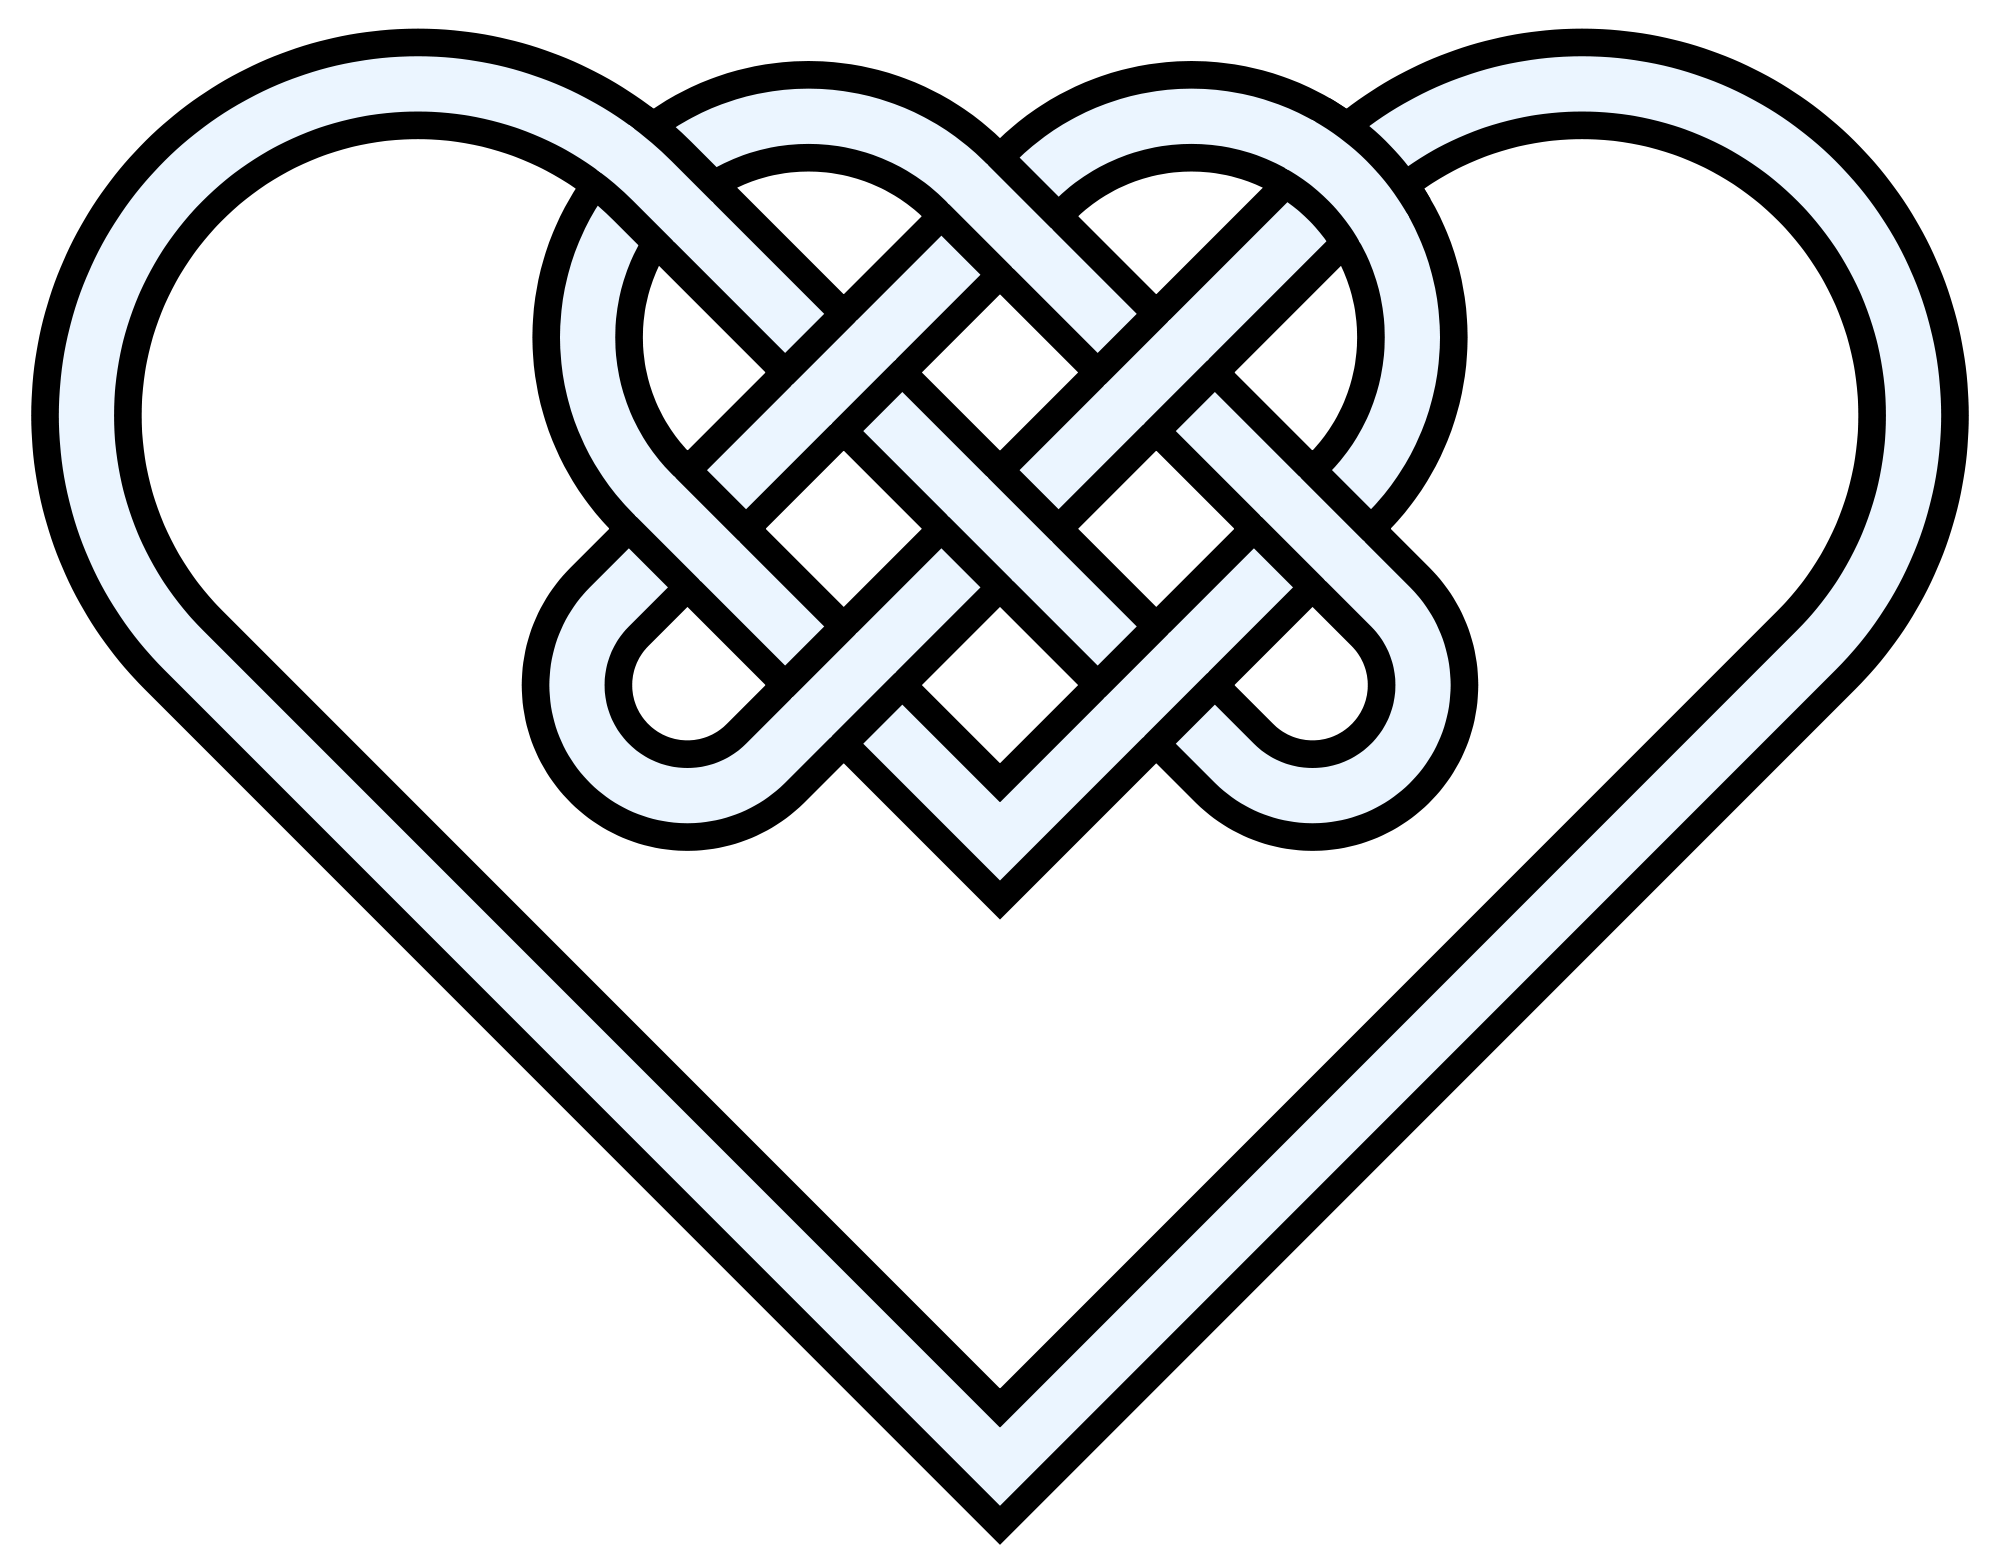 Double drawing at getdrawings. Knot clipart rope heart